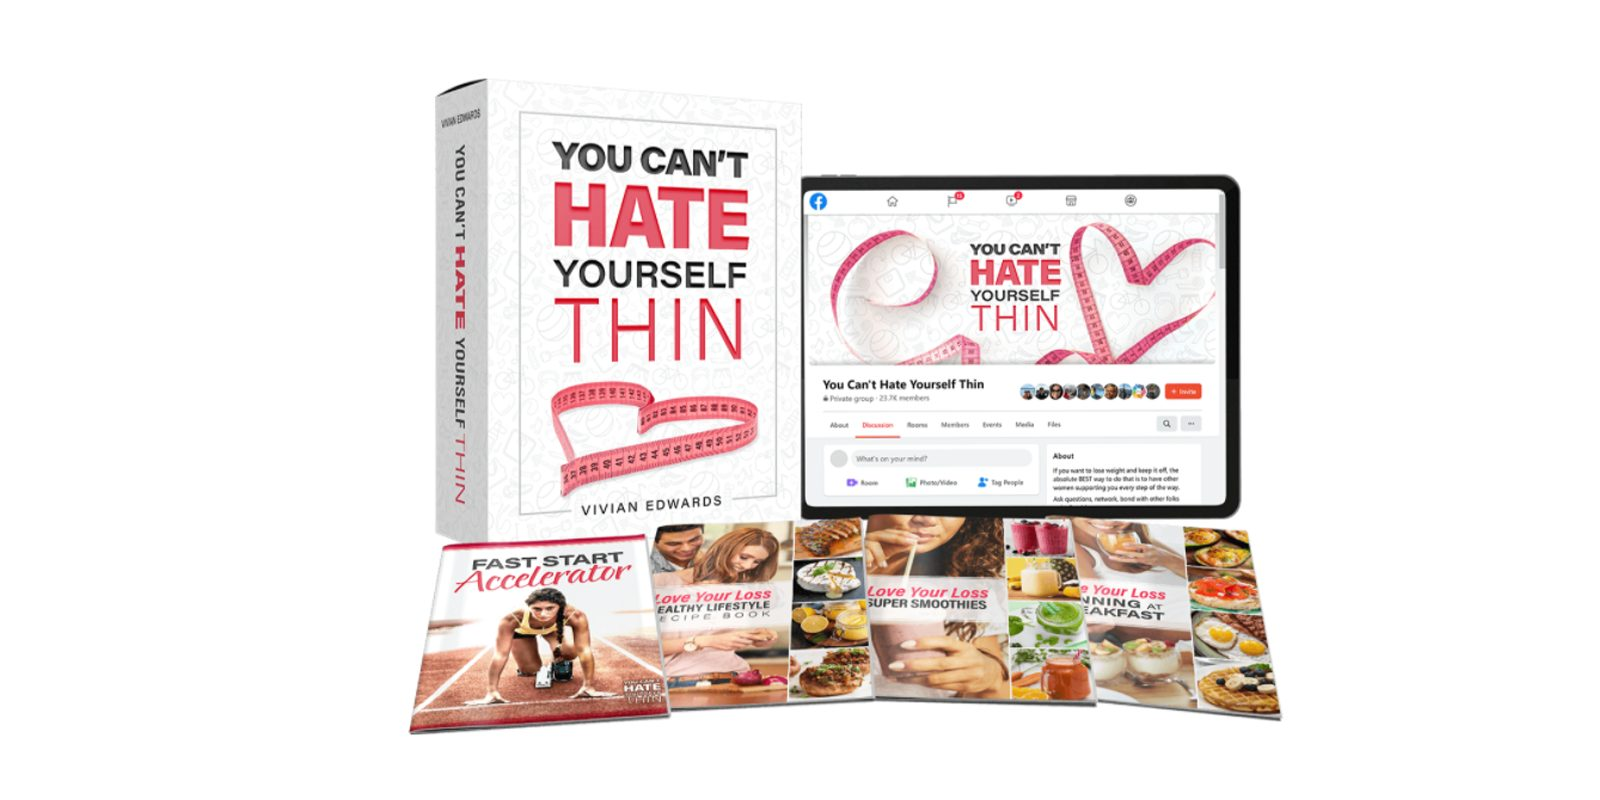 You Can't Hate Yourself Thin program